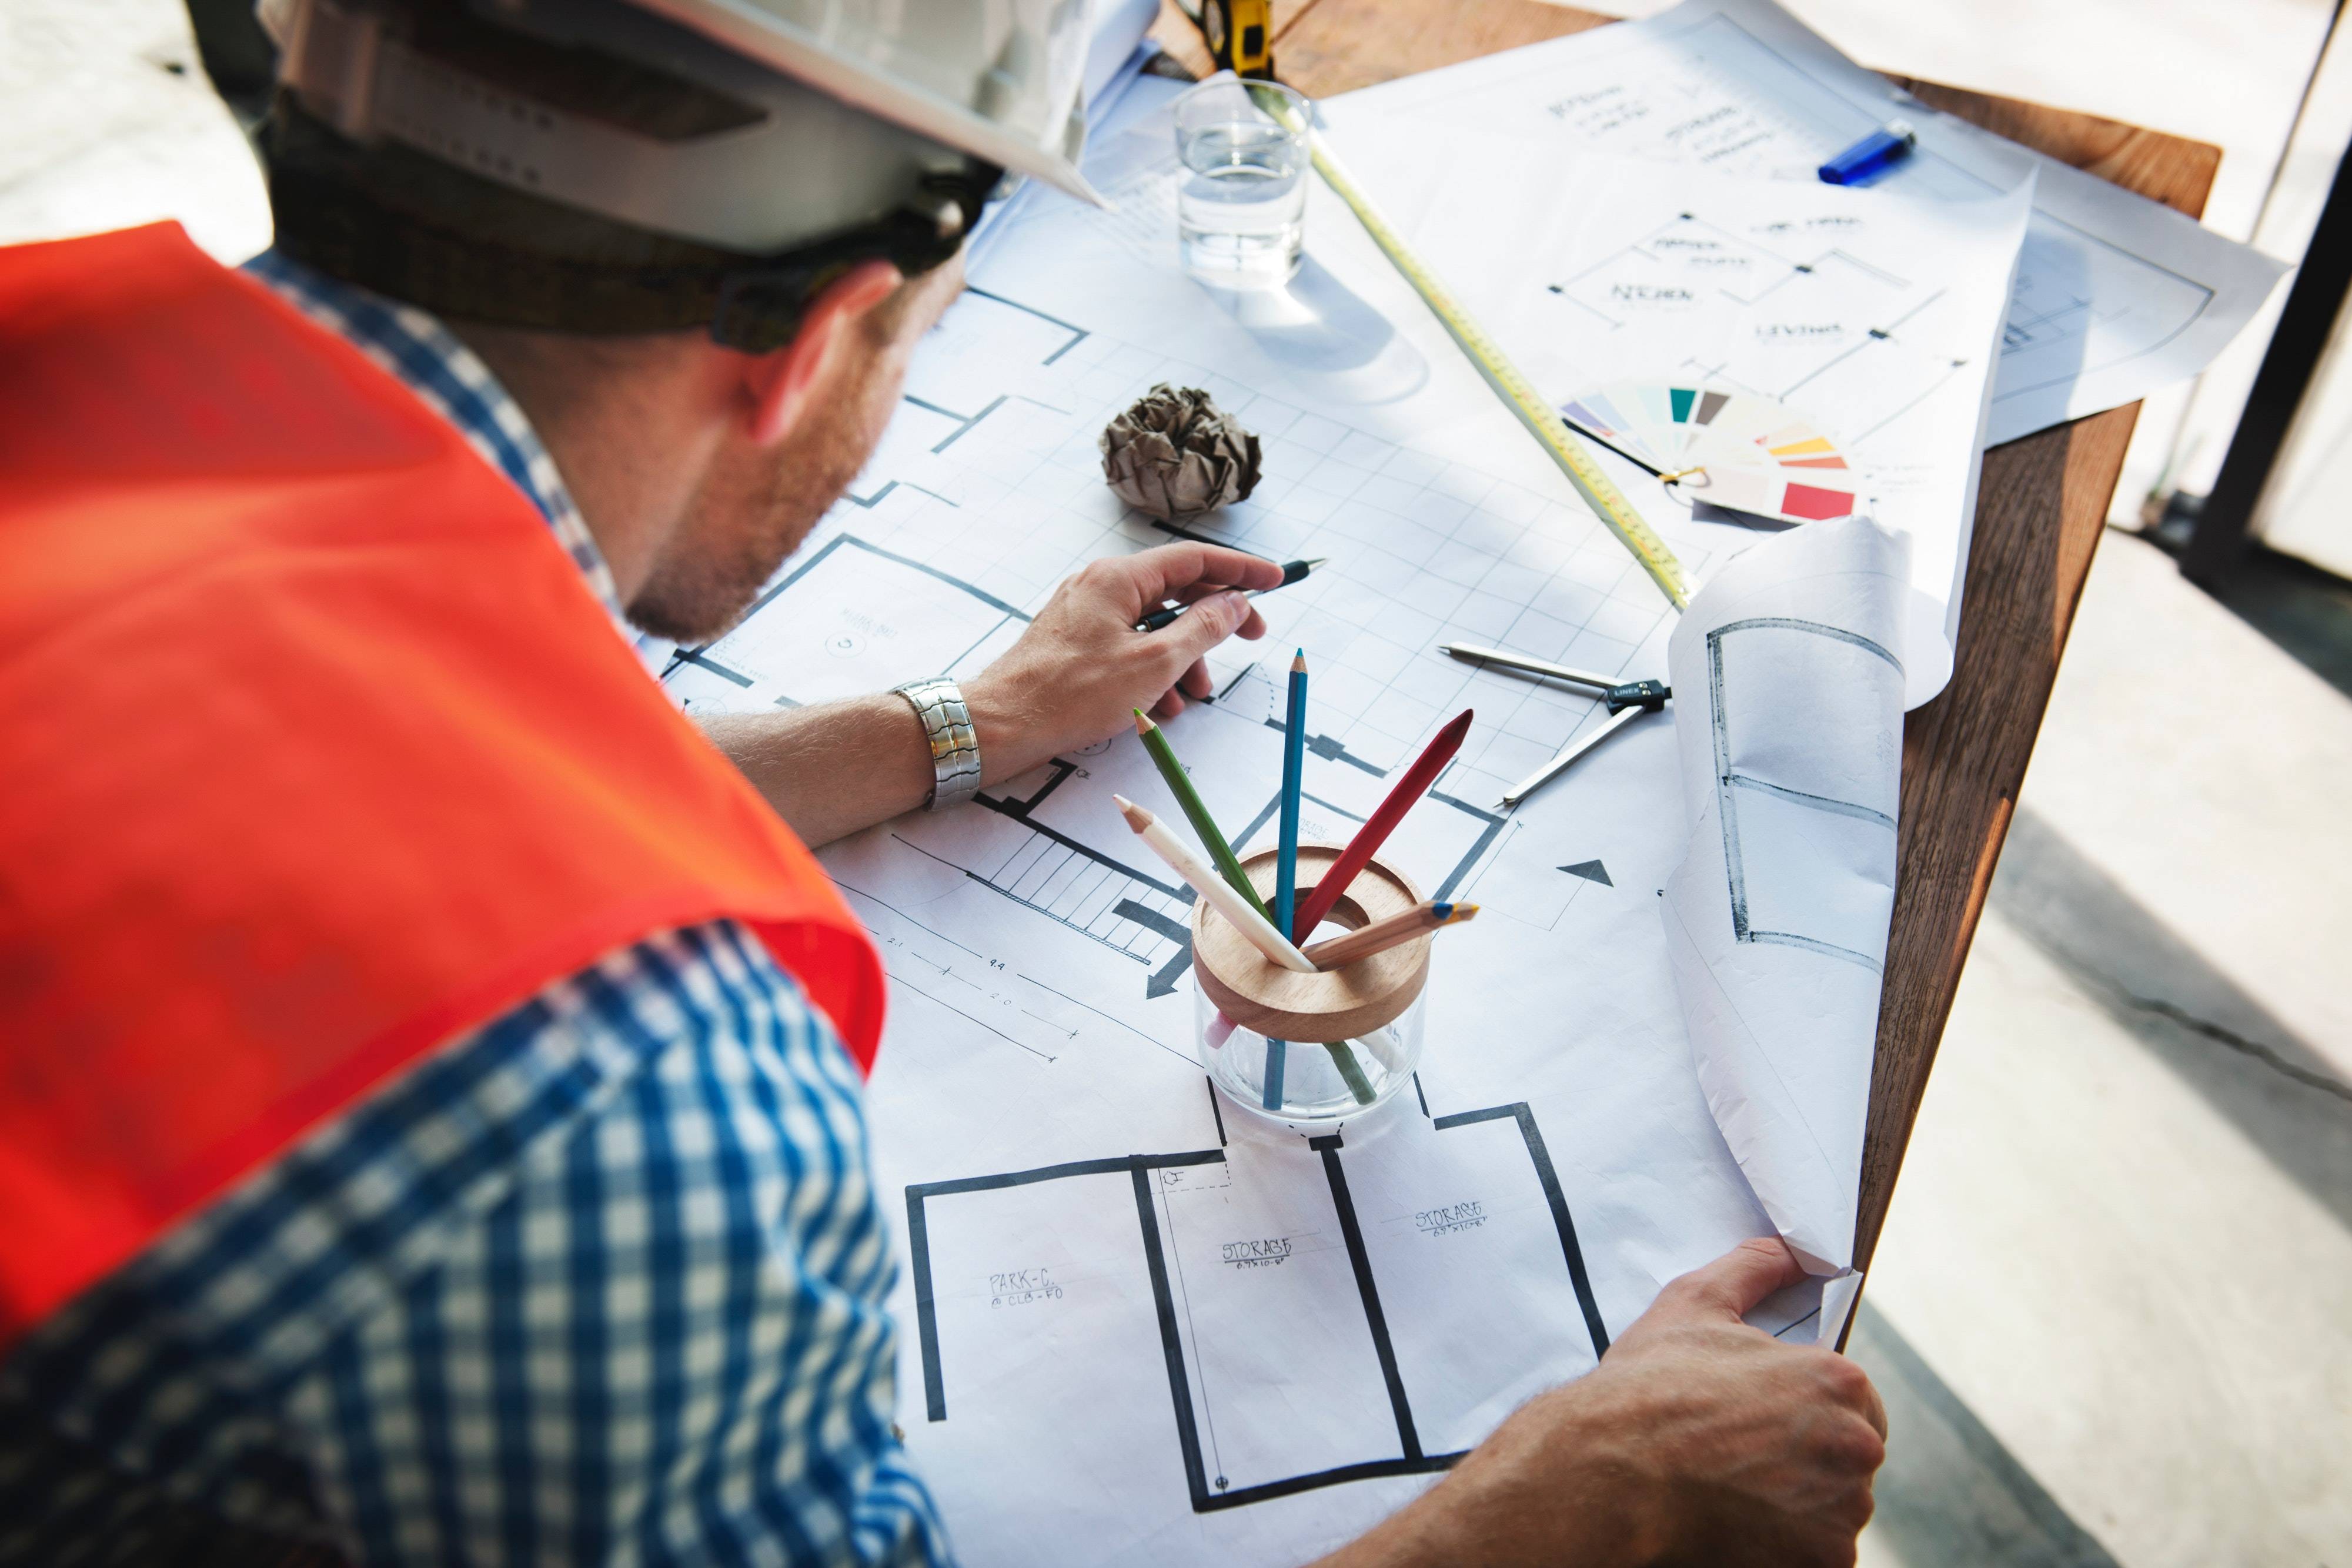 Study construction courses with access to excellent facilities like our design studio with computer aided design.  Learn project management, be a building surveyor and more.